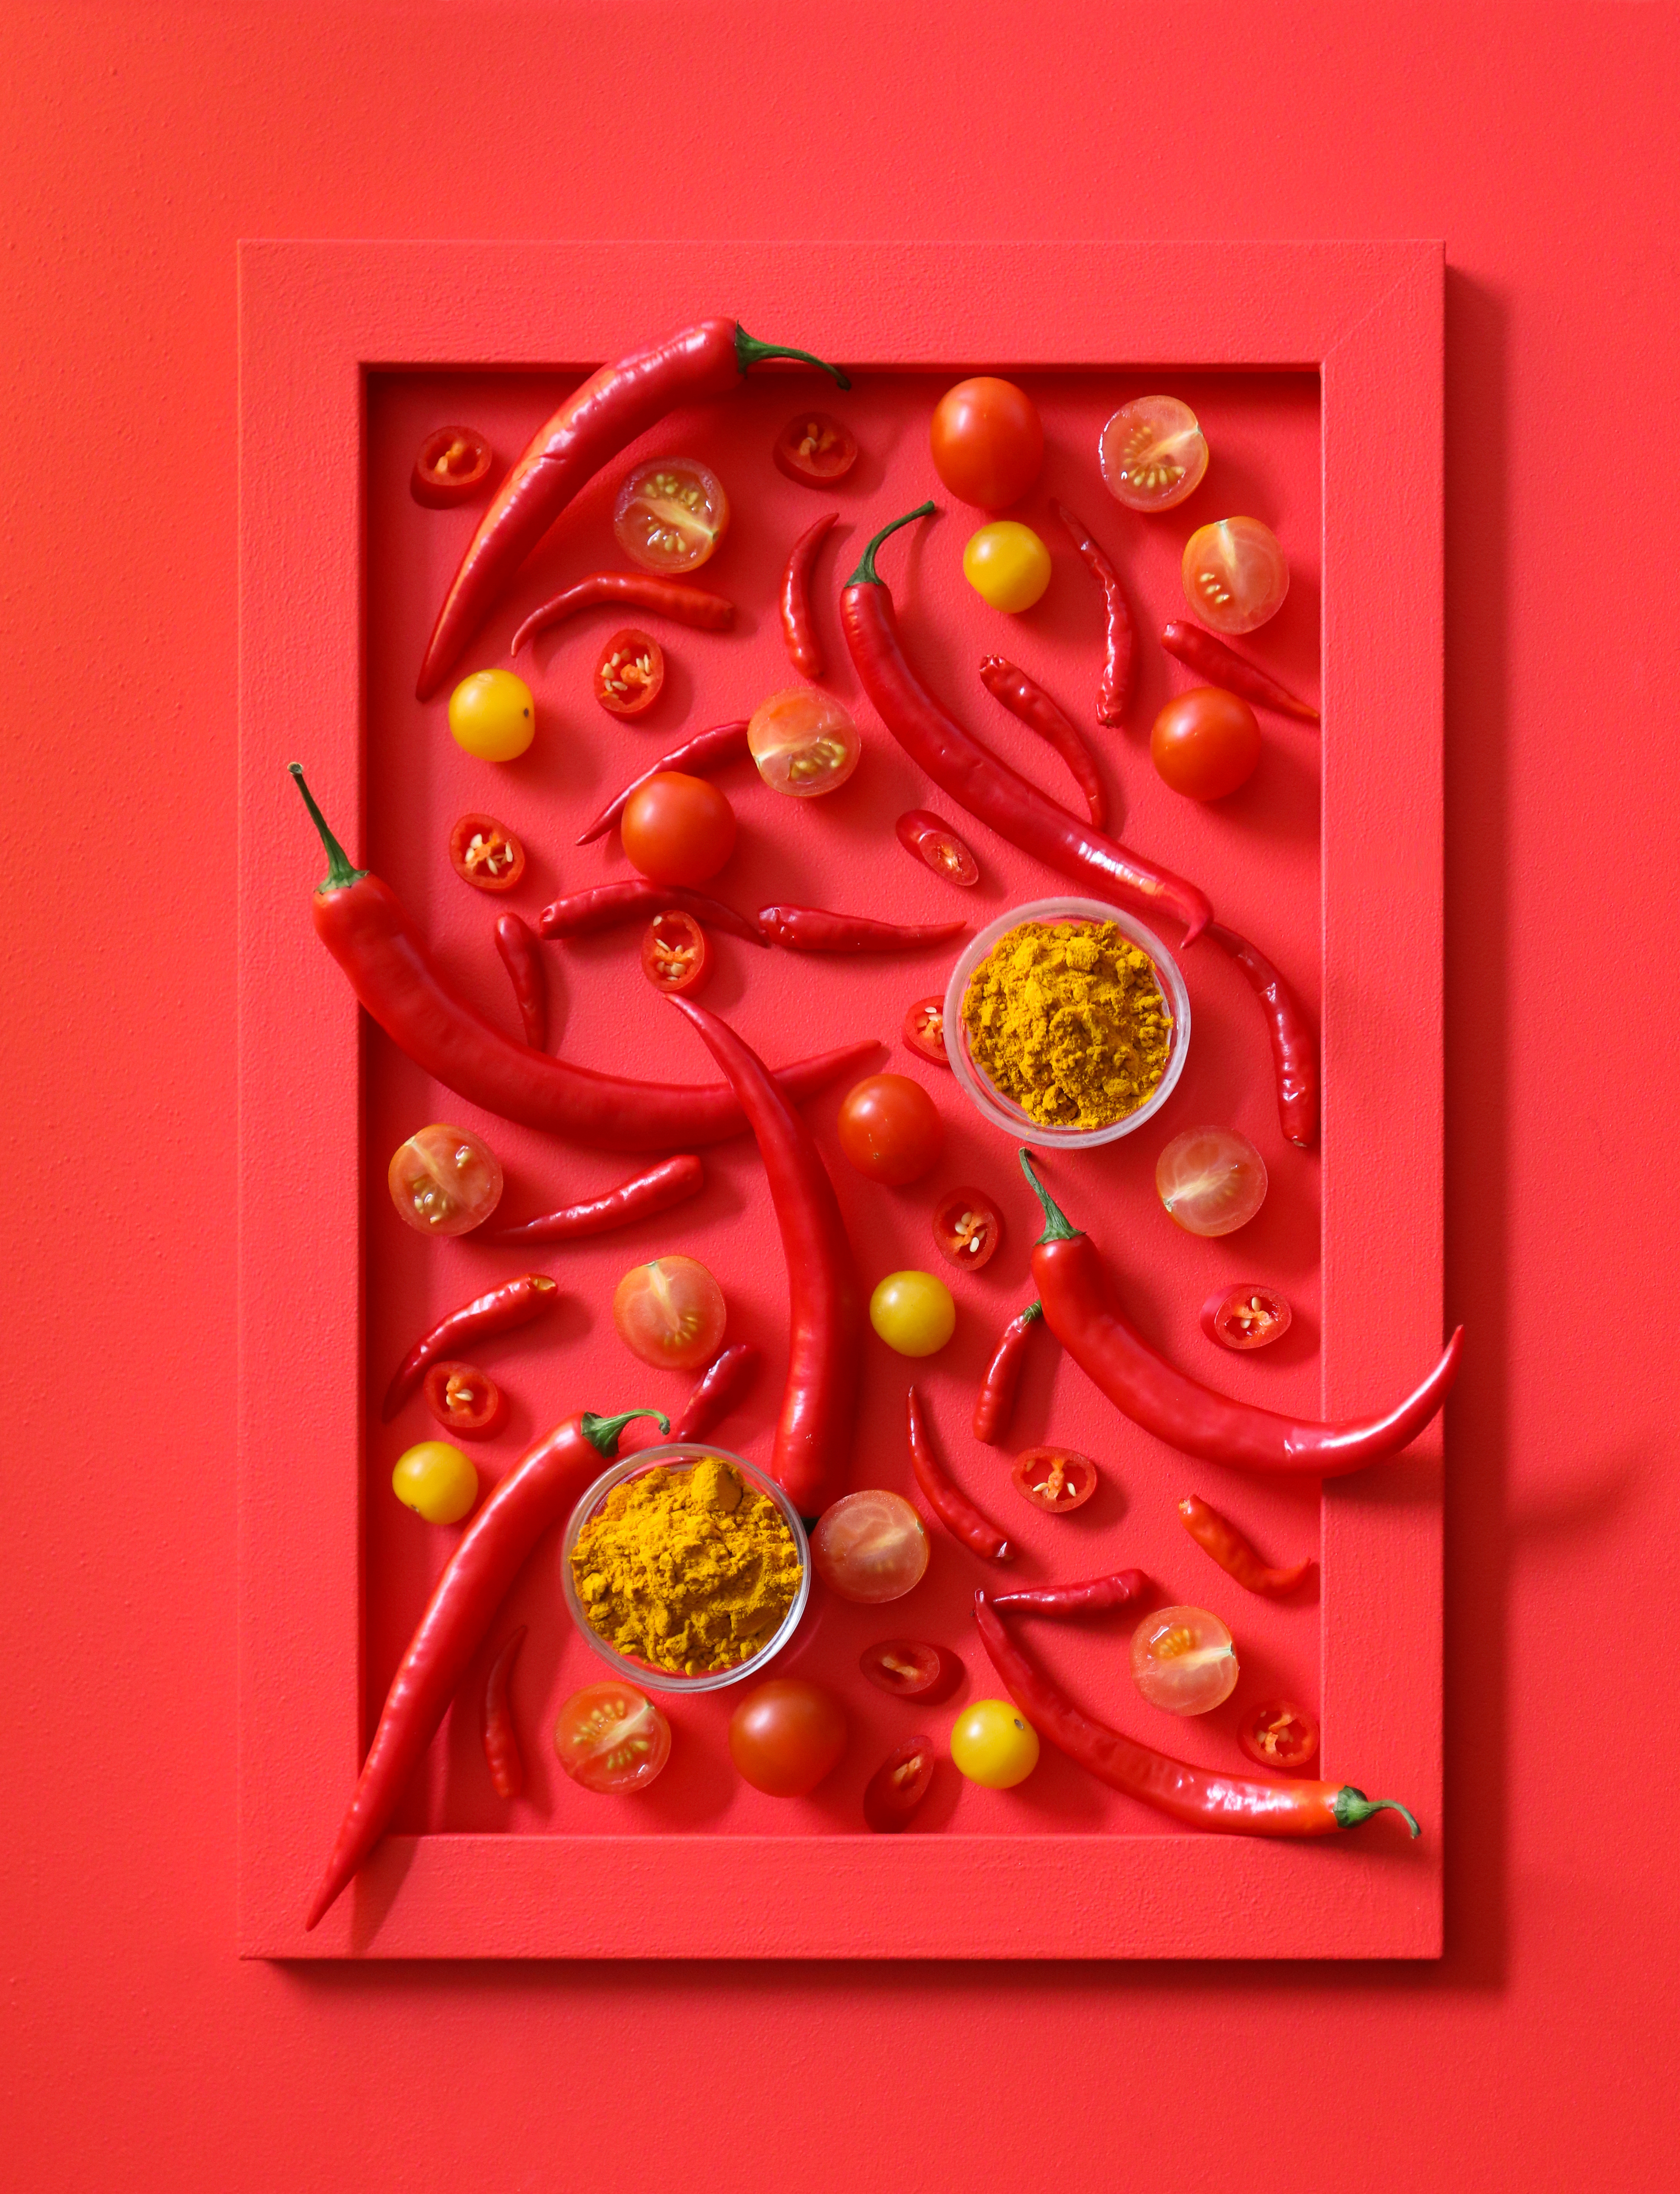 A red frame filled with red thai ingredients such as chillies that created a framed food artwork